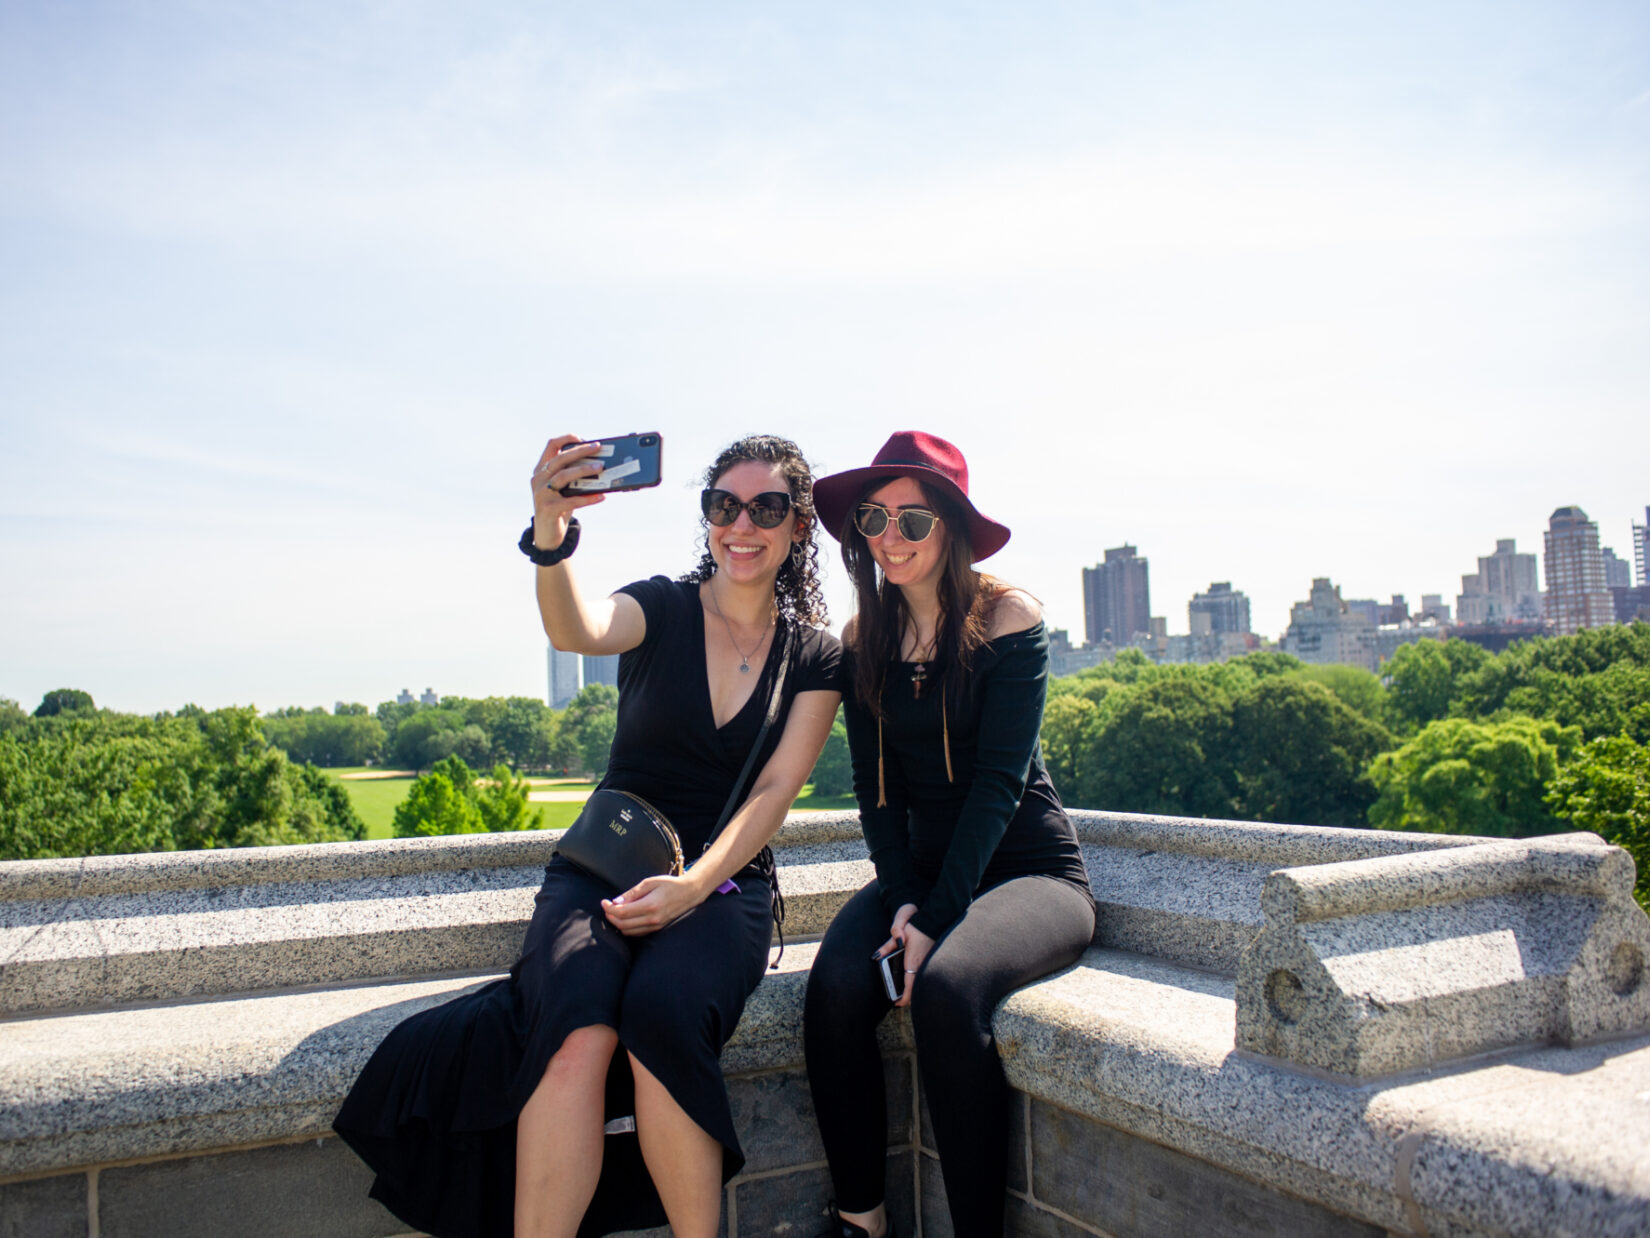 The Beginners Guide to Photography in Central Park